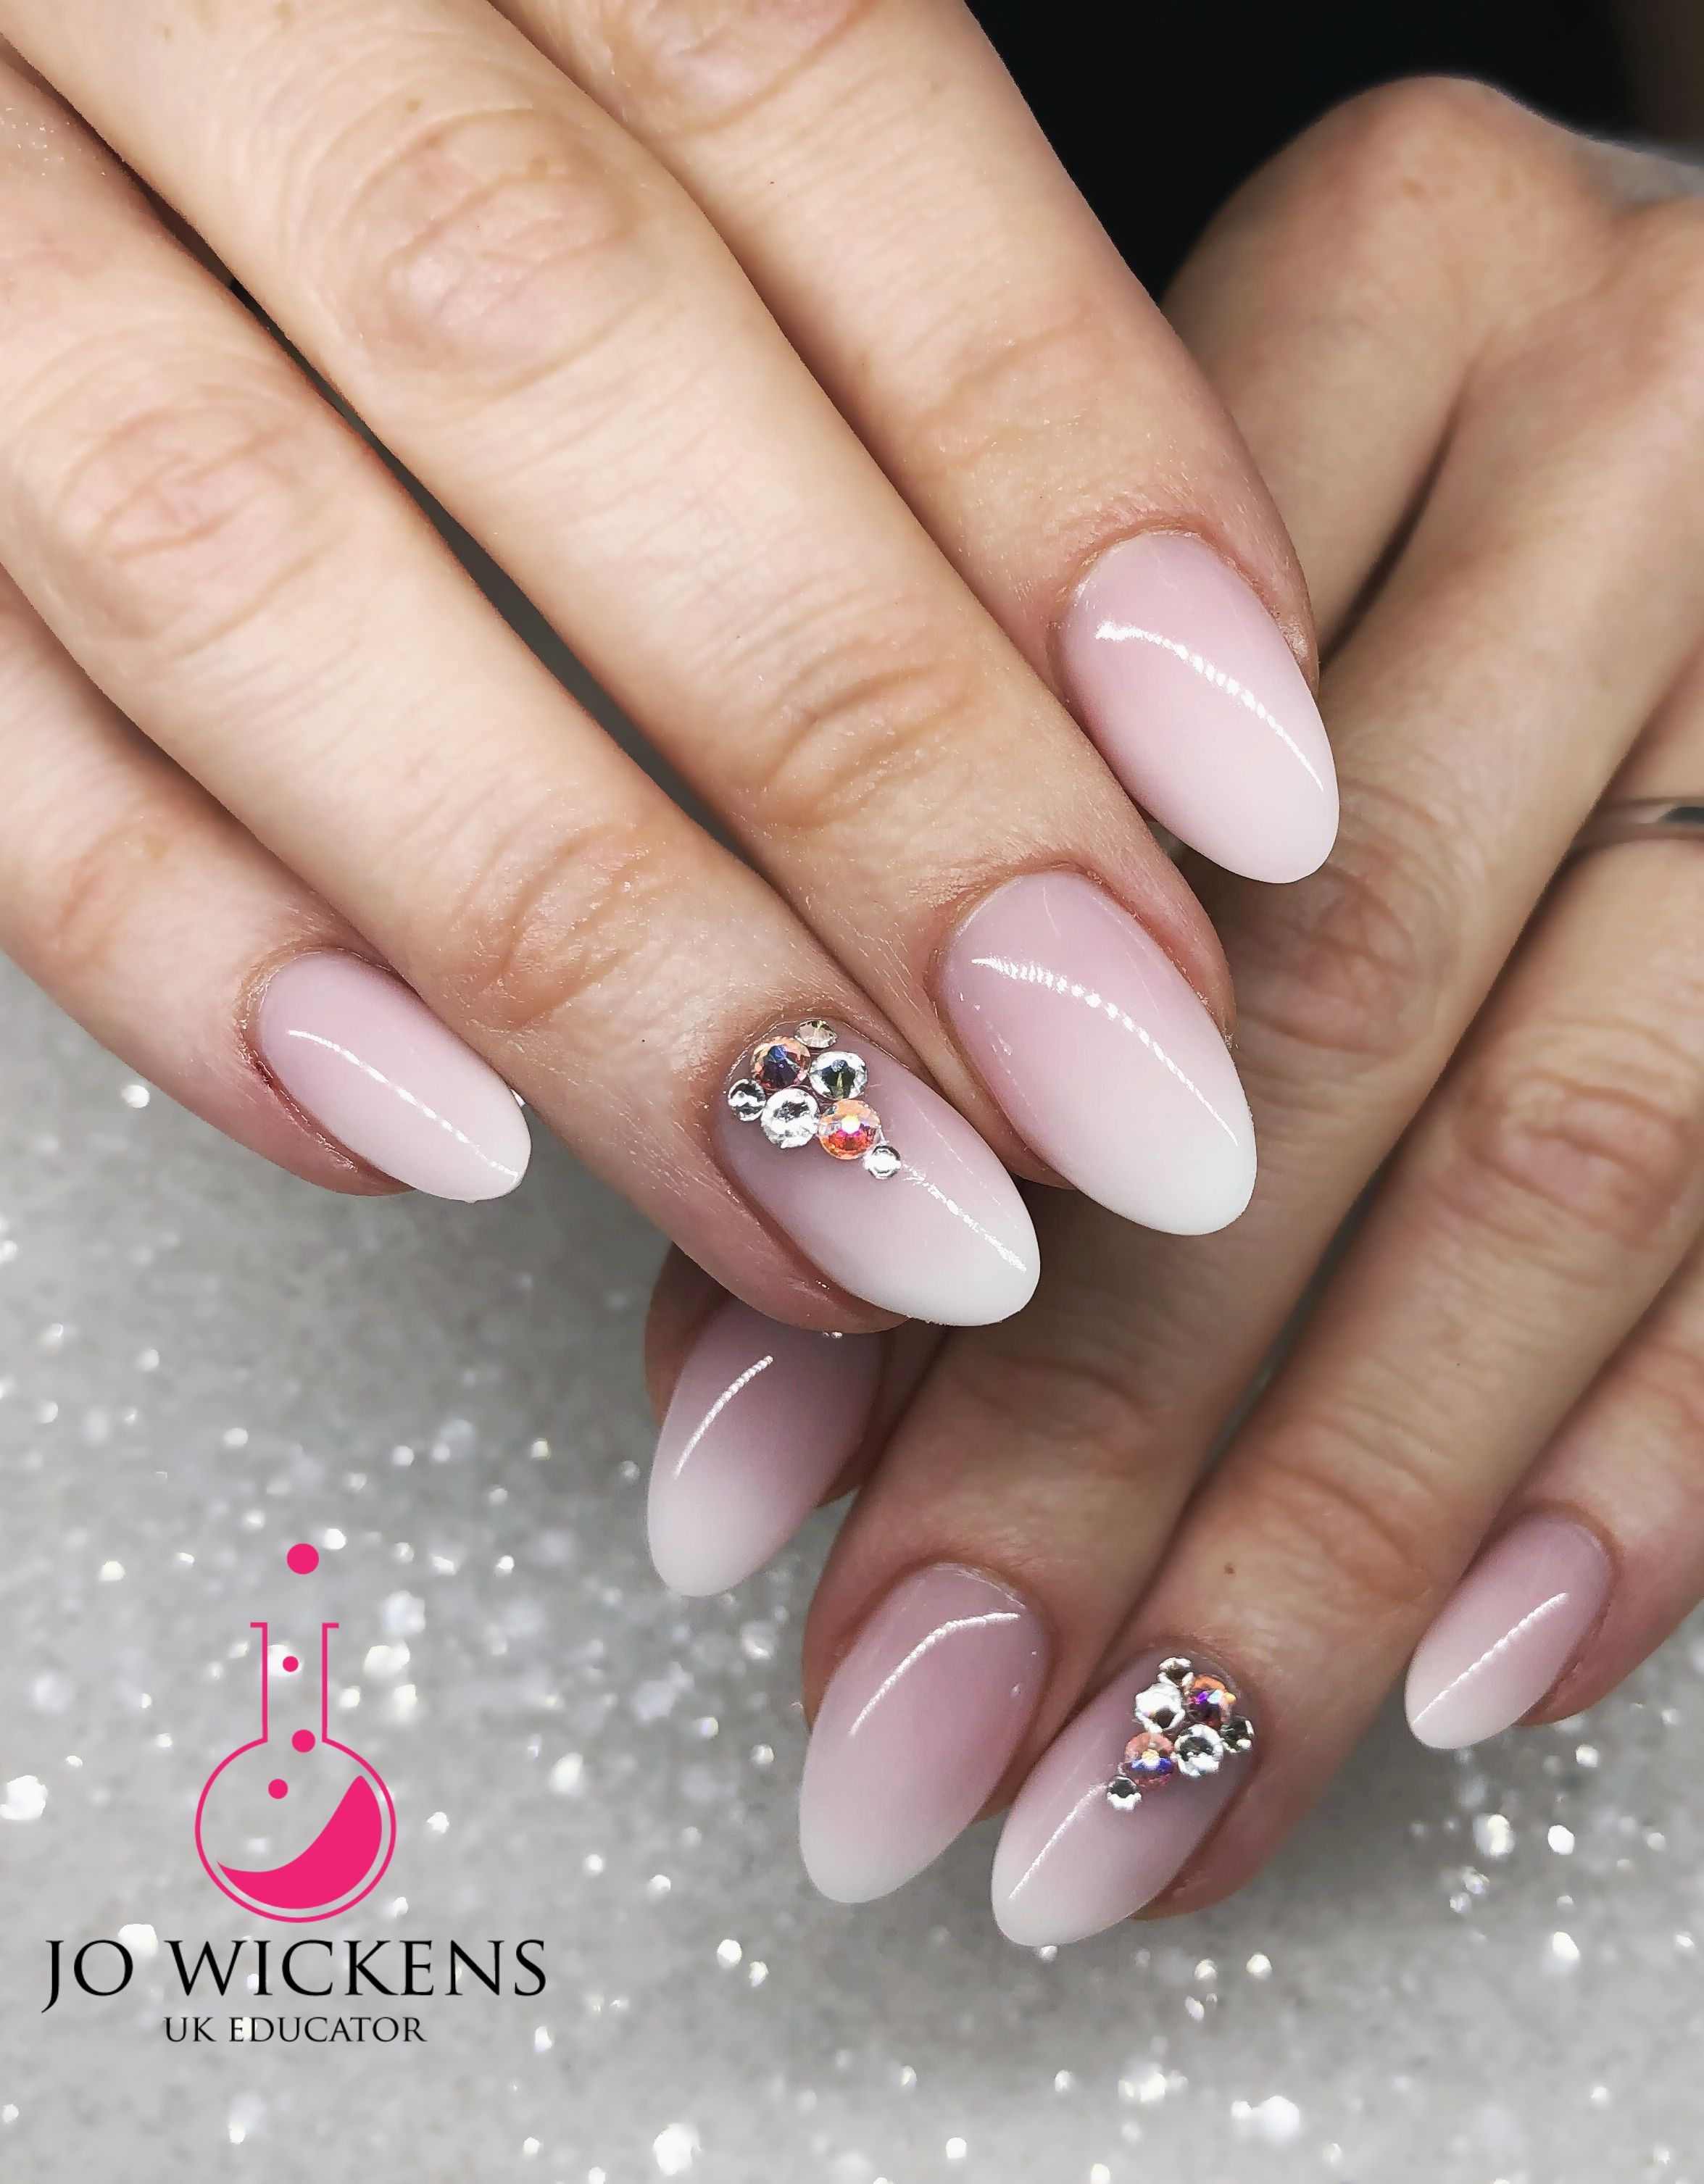 Wedding Nails Bride Bridal Bride To Be Beautiful Light